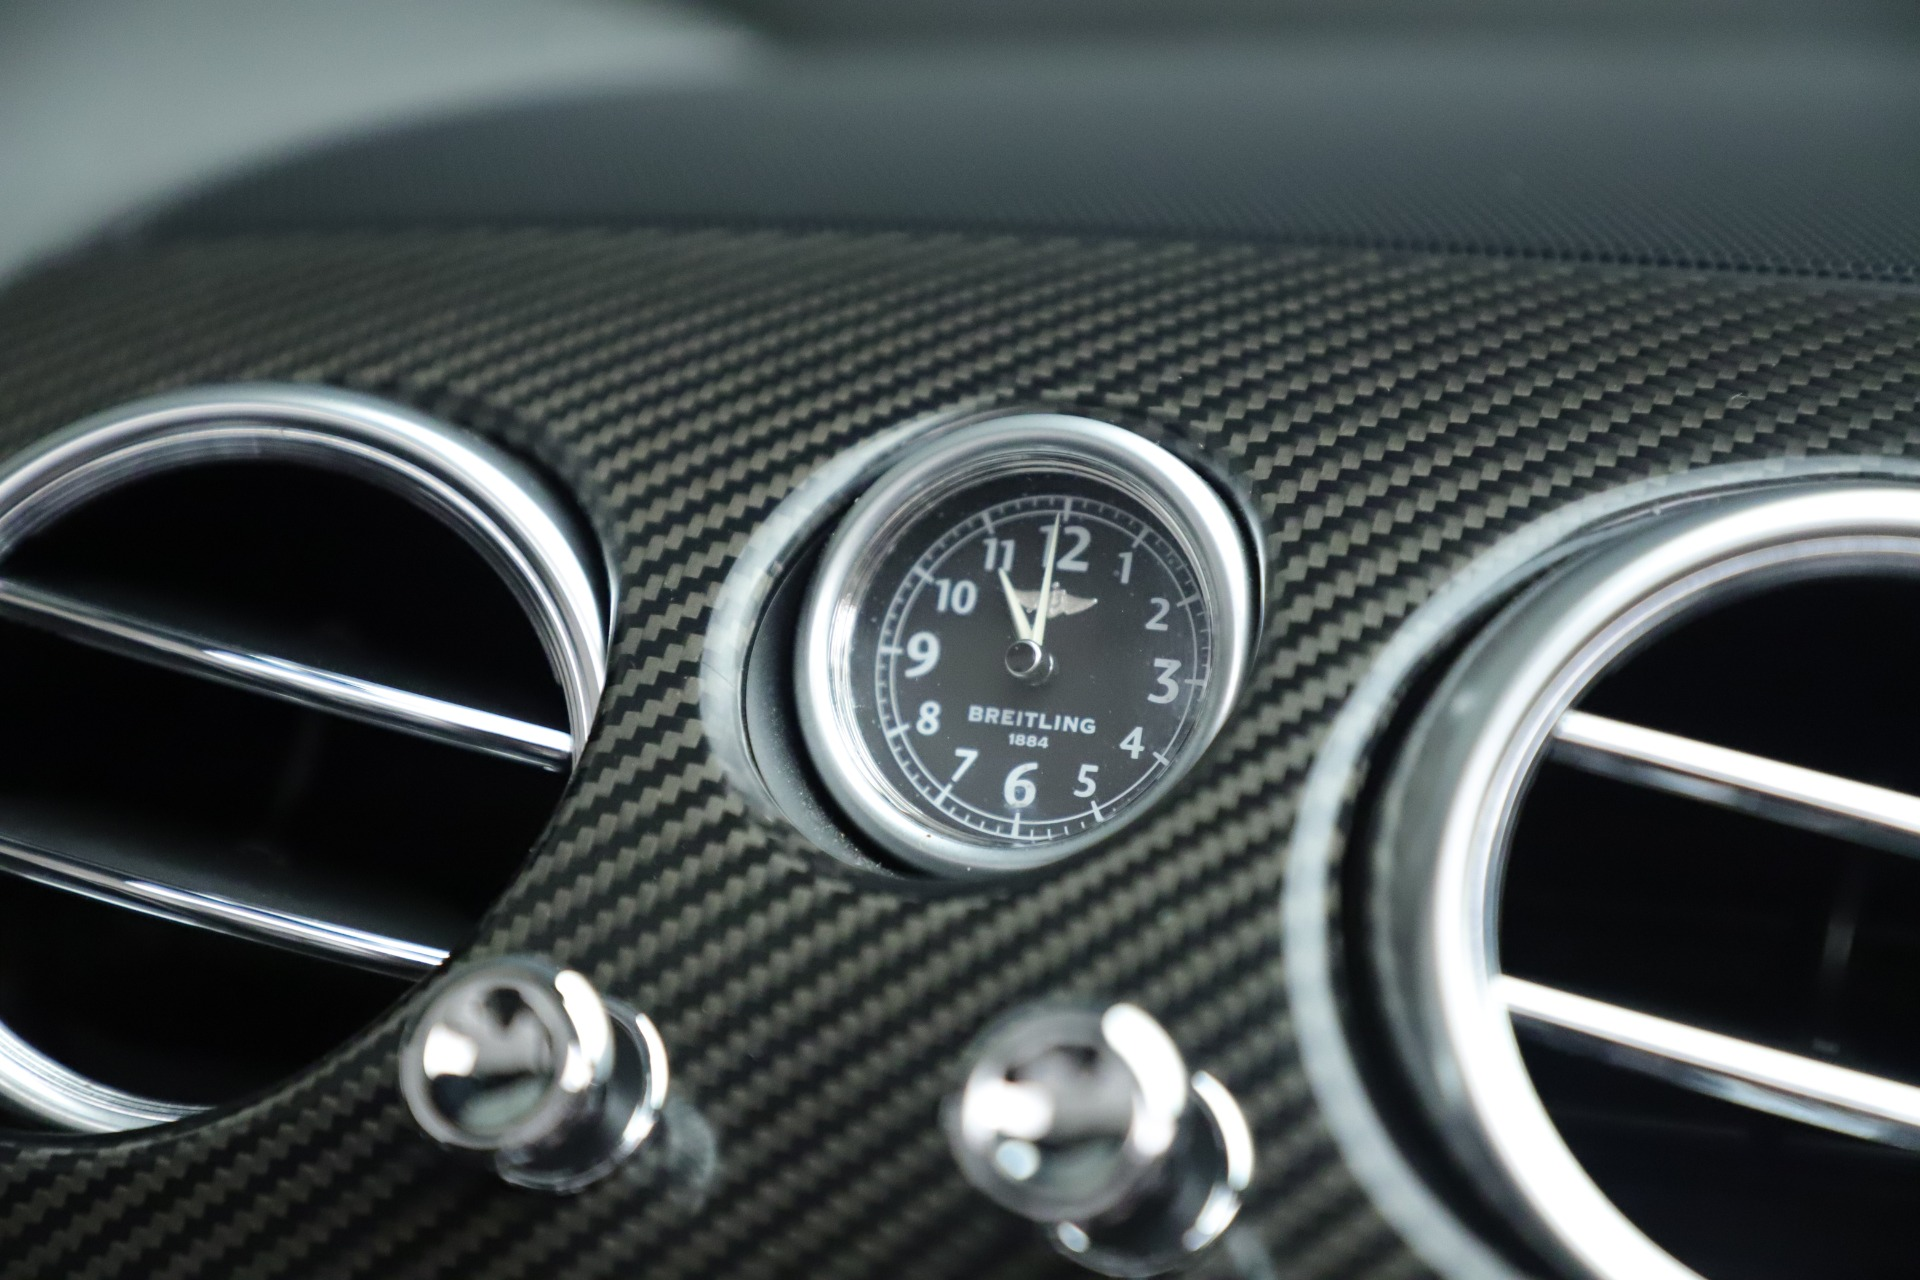 Used 2012 Bentley Continental Supersports Supersports For Sale In Westport, CT 3214_p26